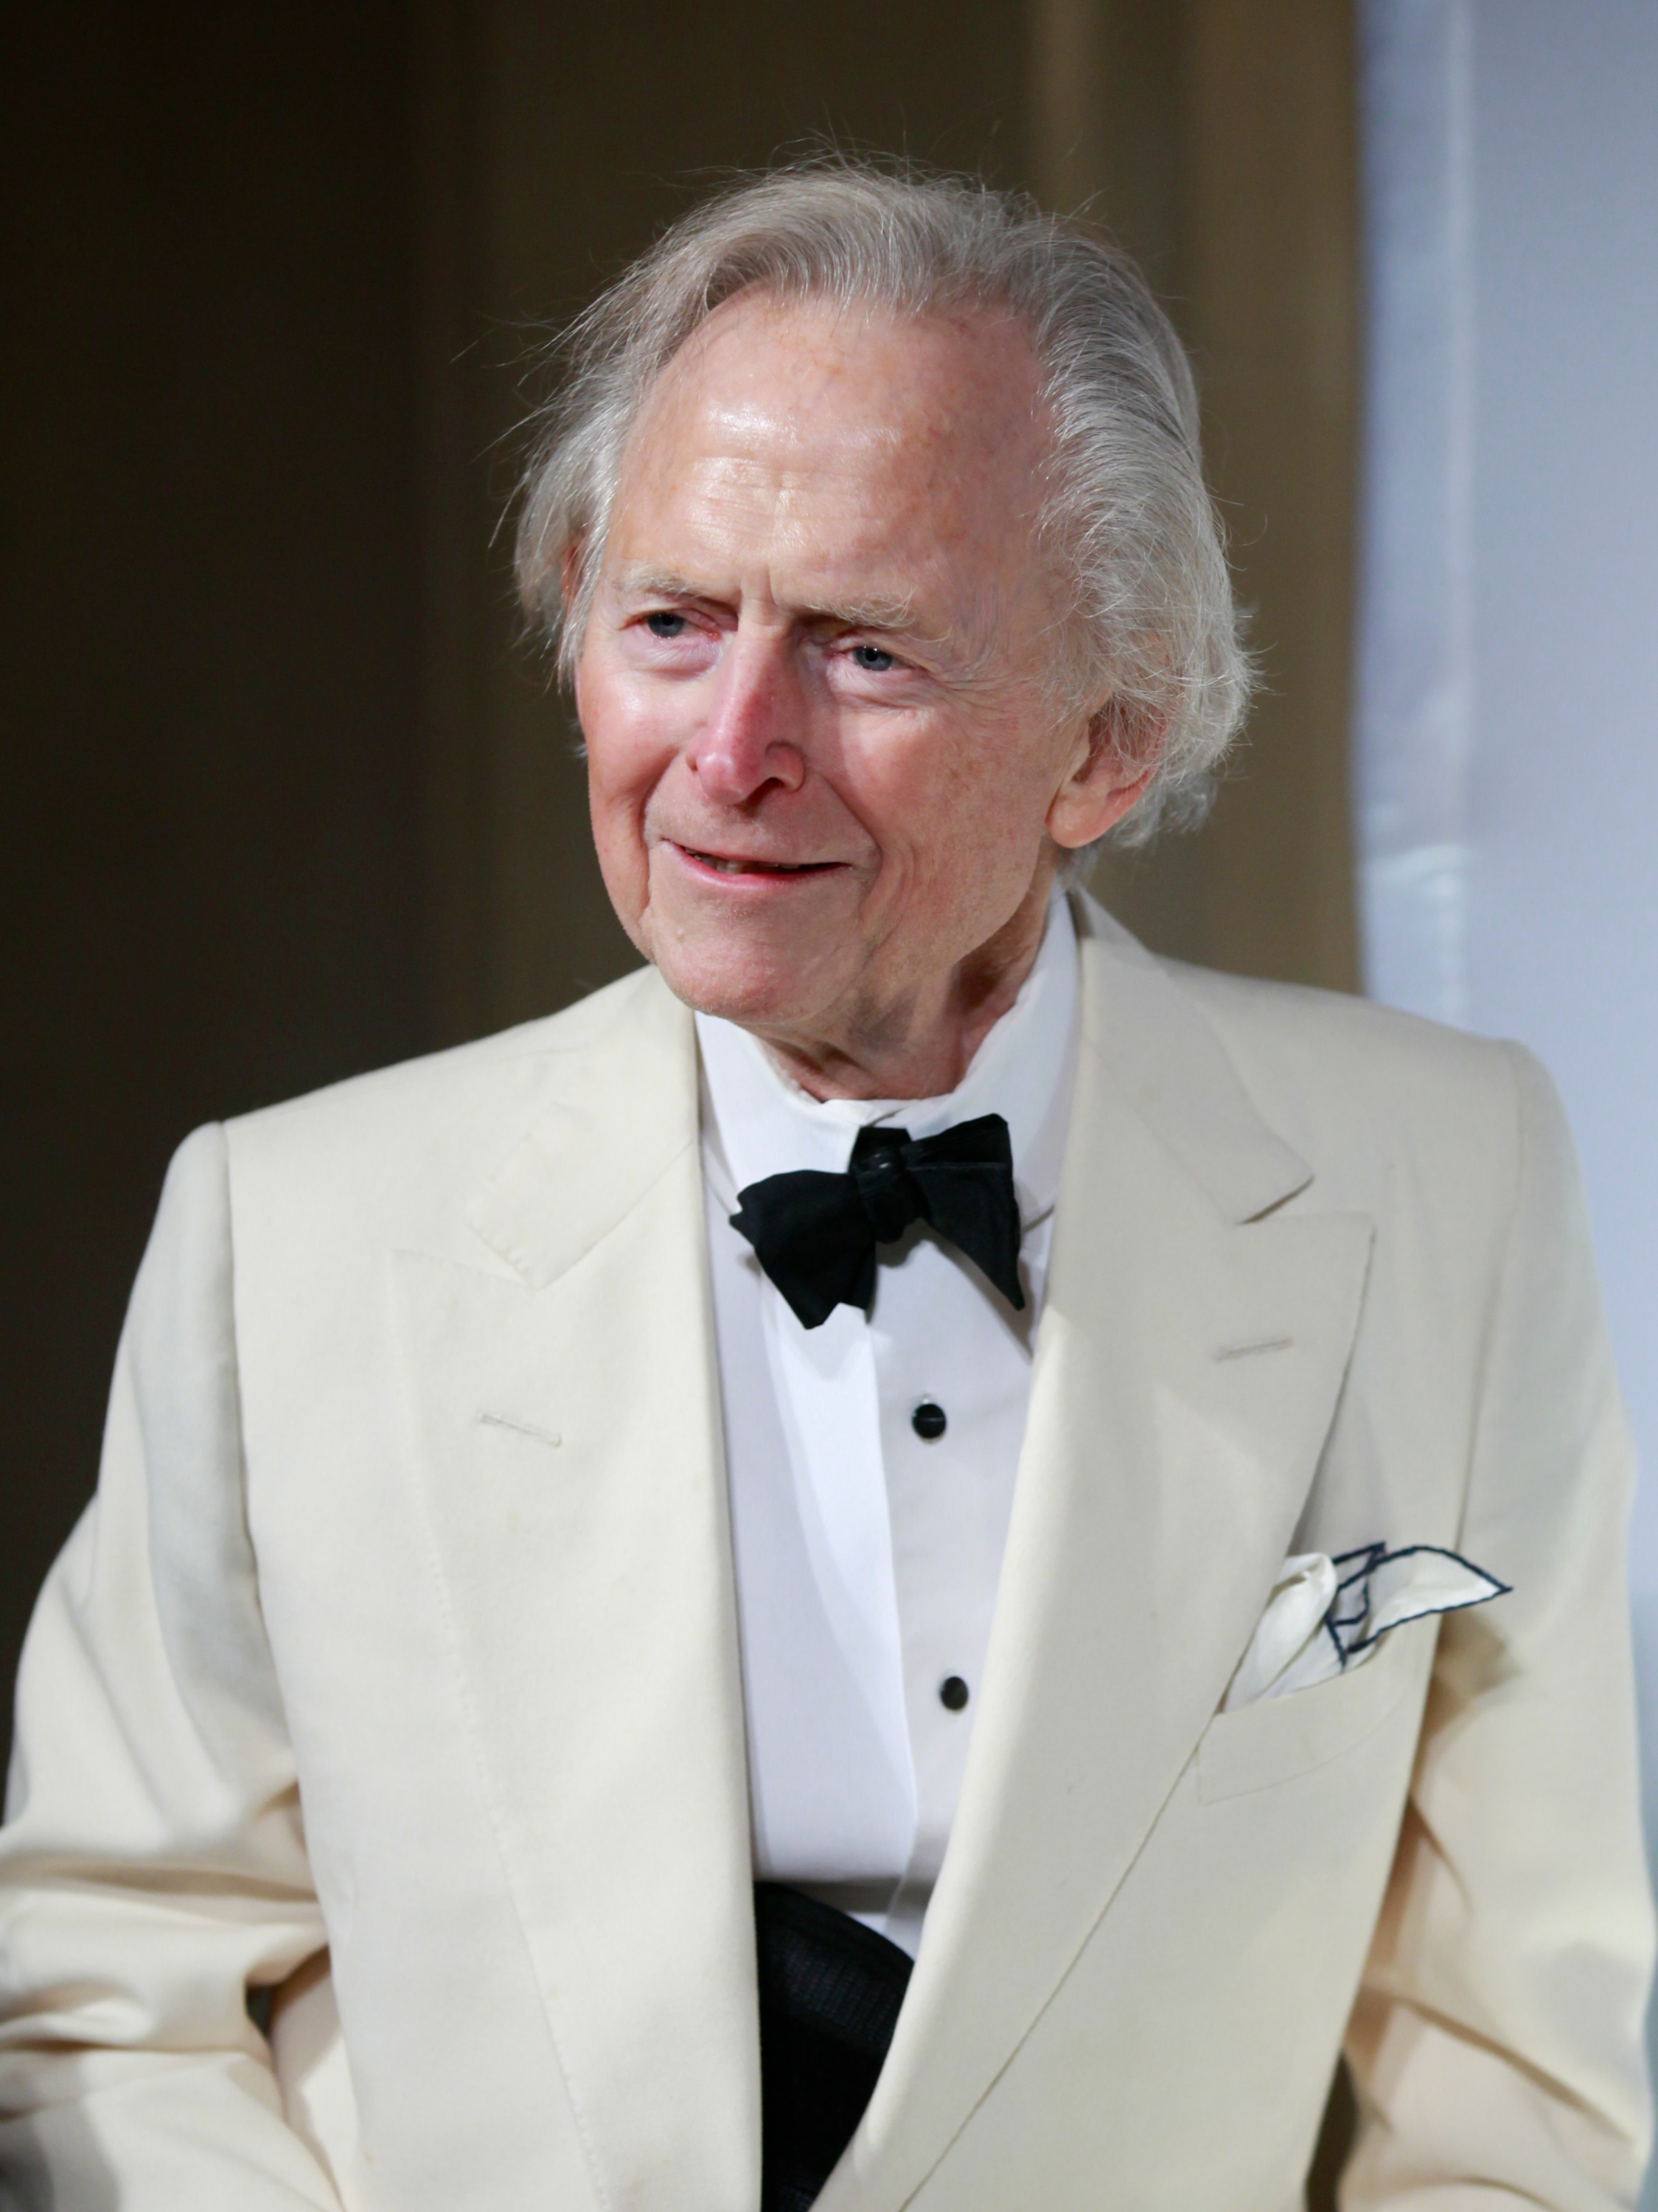 Tom Wolfe at the 2012 Trophee Des Arts gala in New York City on Nov. 30, 2012.